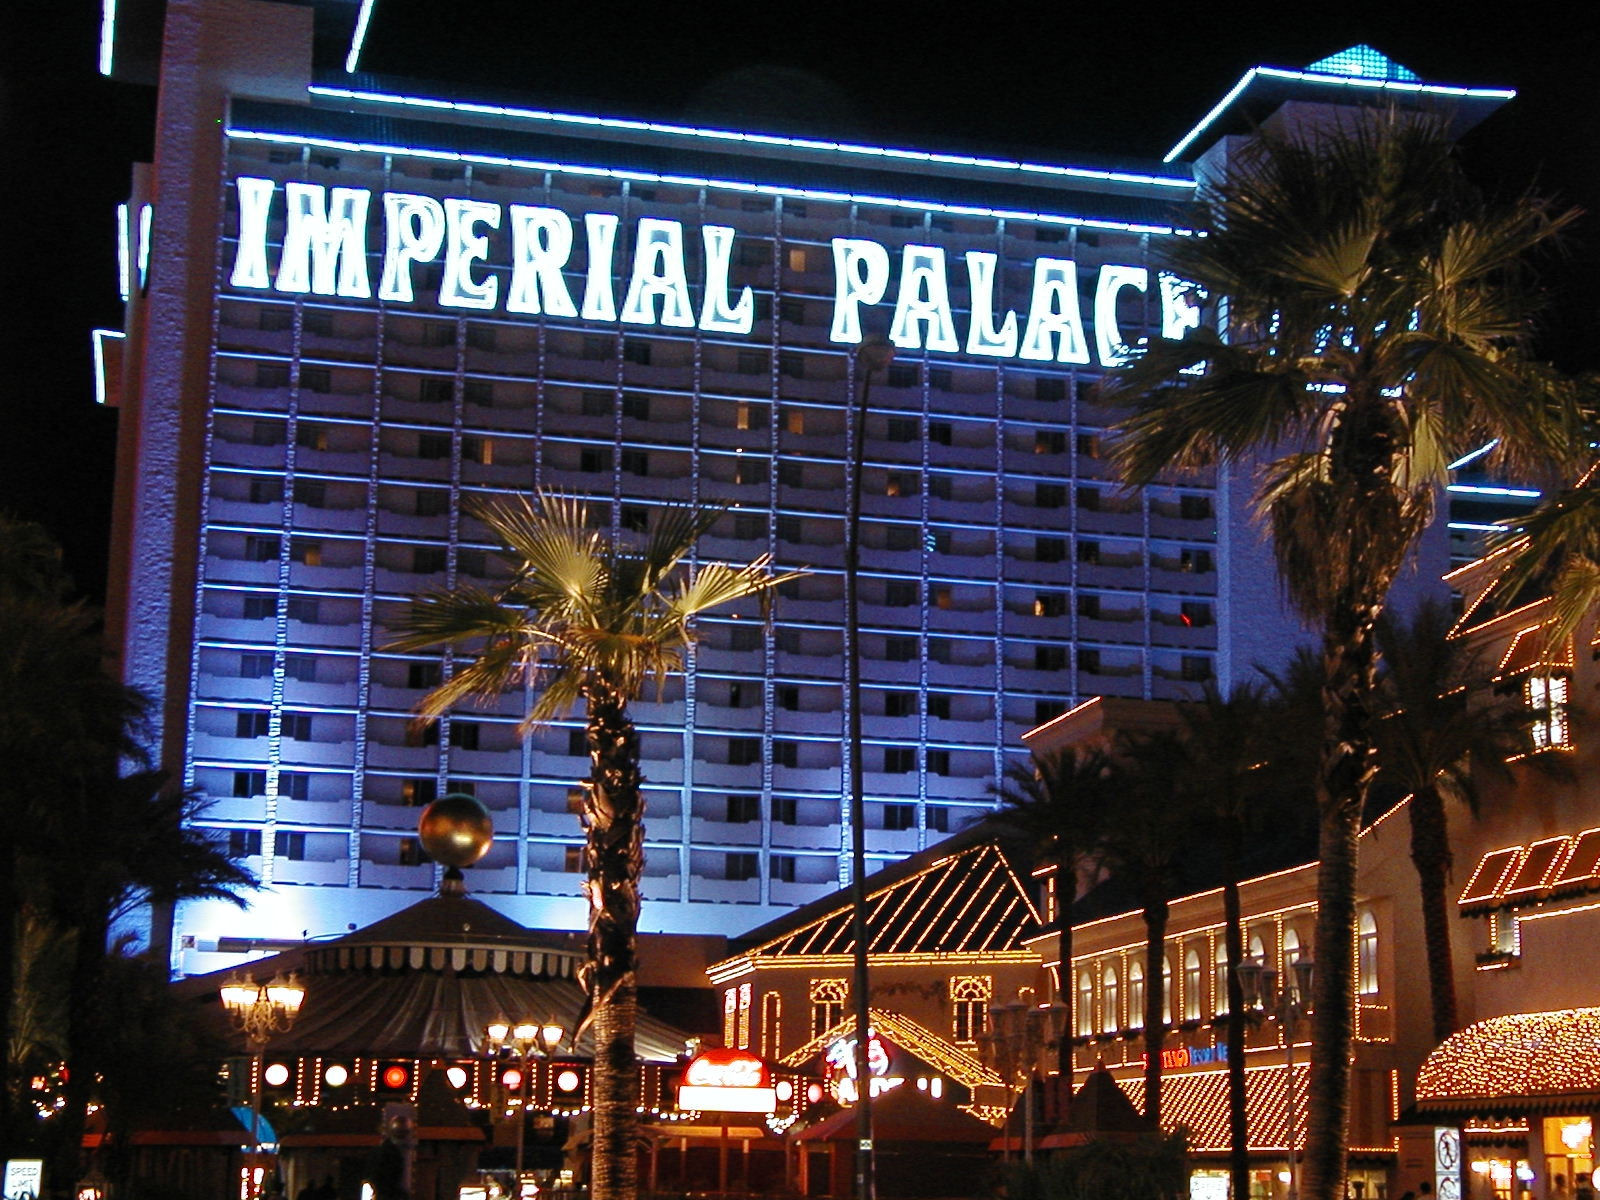 Imperial palace hotel casino address how big is microsoft gambling with windows 8